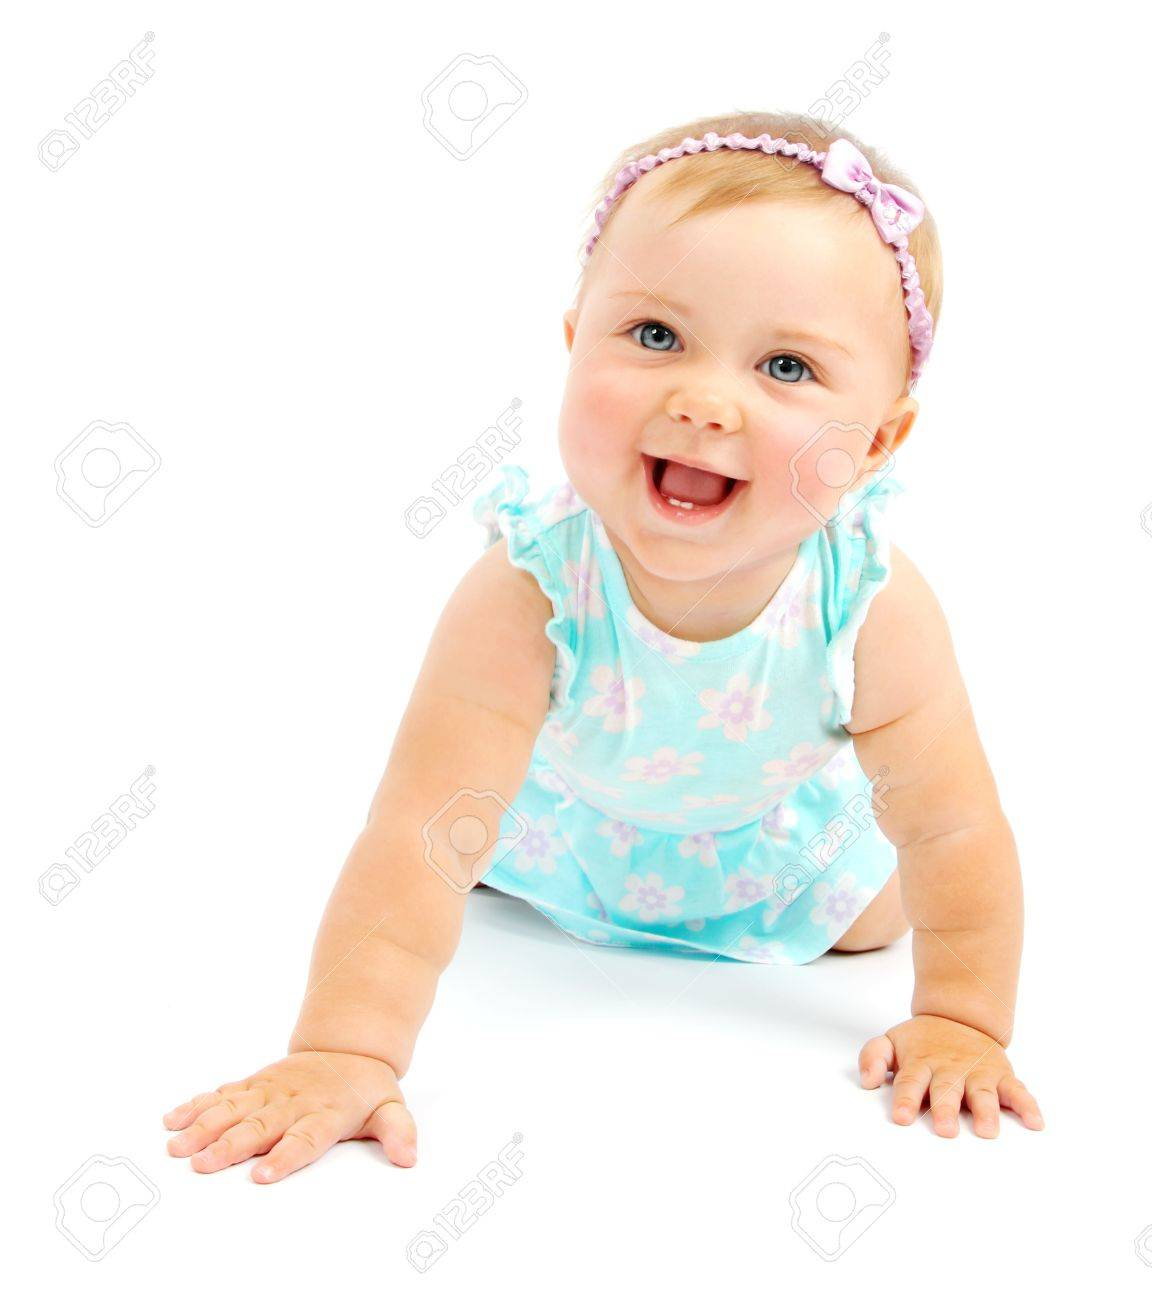 Adorable little baby girl laughing, creeping & playing in the studio, isolated on white background Stock Photo - 8980318